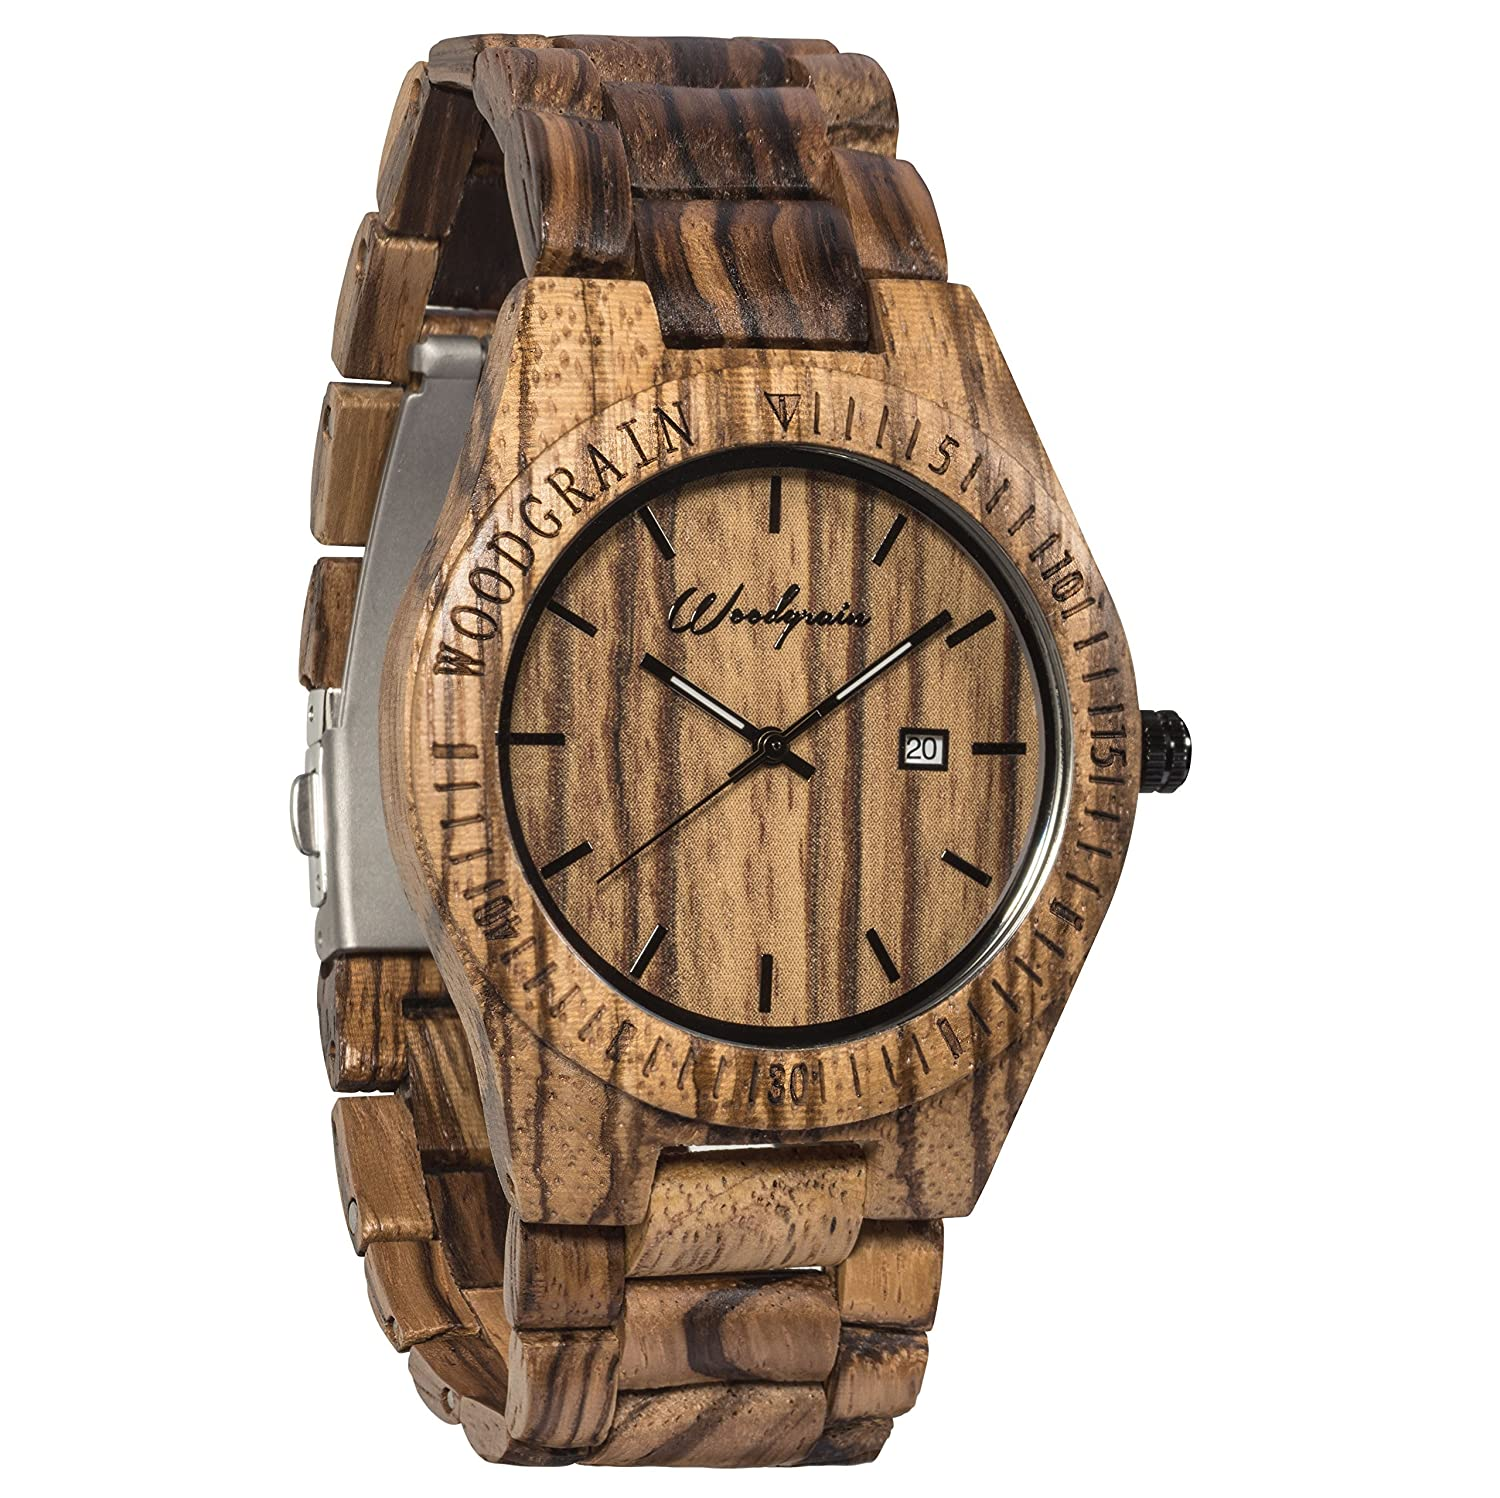 handmade com watches wood amazon natural brown leather watch wooden dp band with mens zebra grain genuine